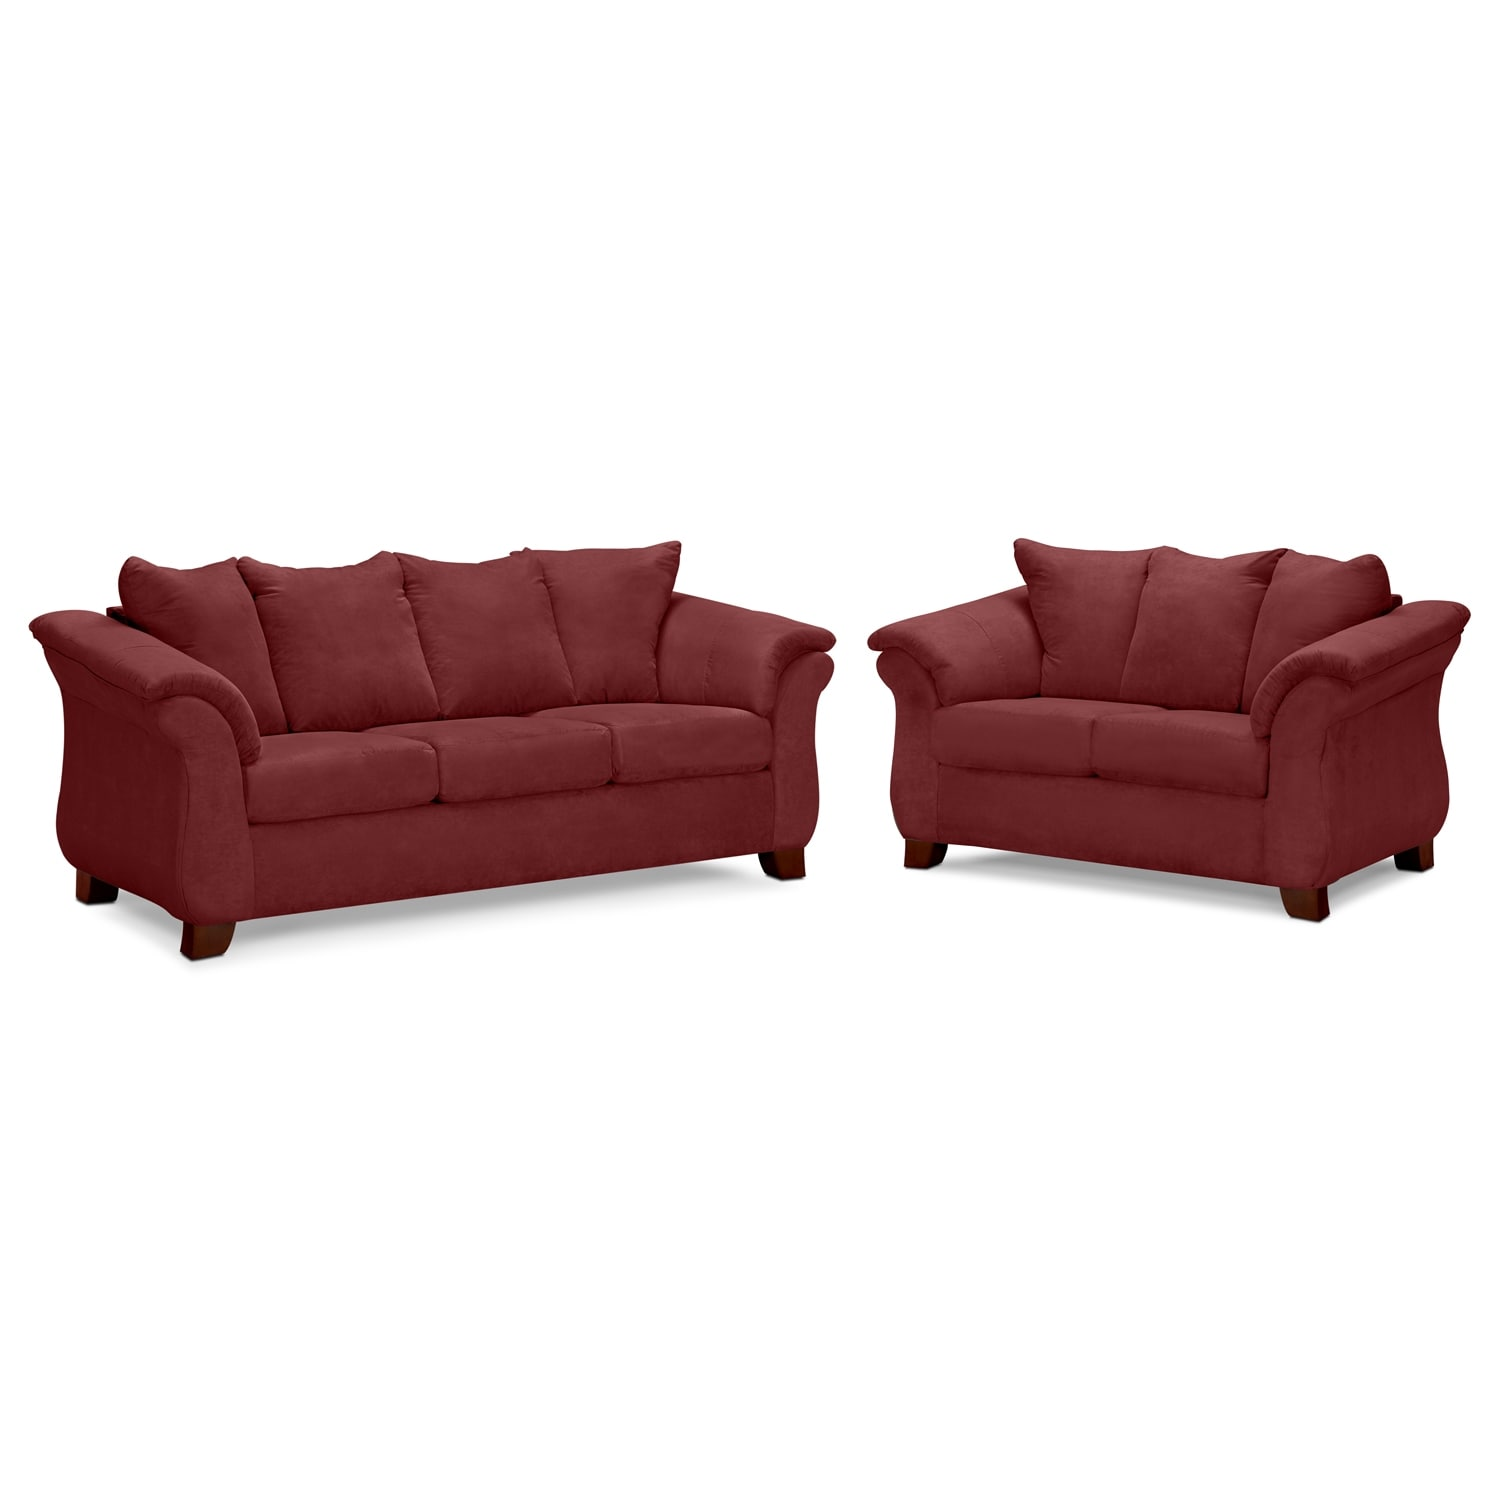 Adrian Sofa And Loveseat Set Red Value City Furniture